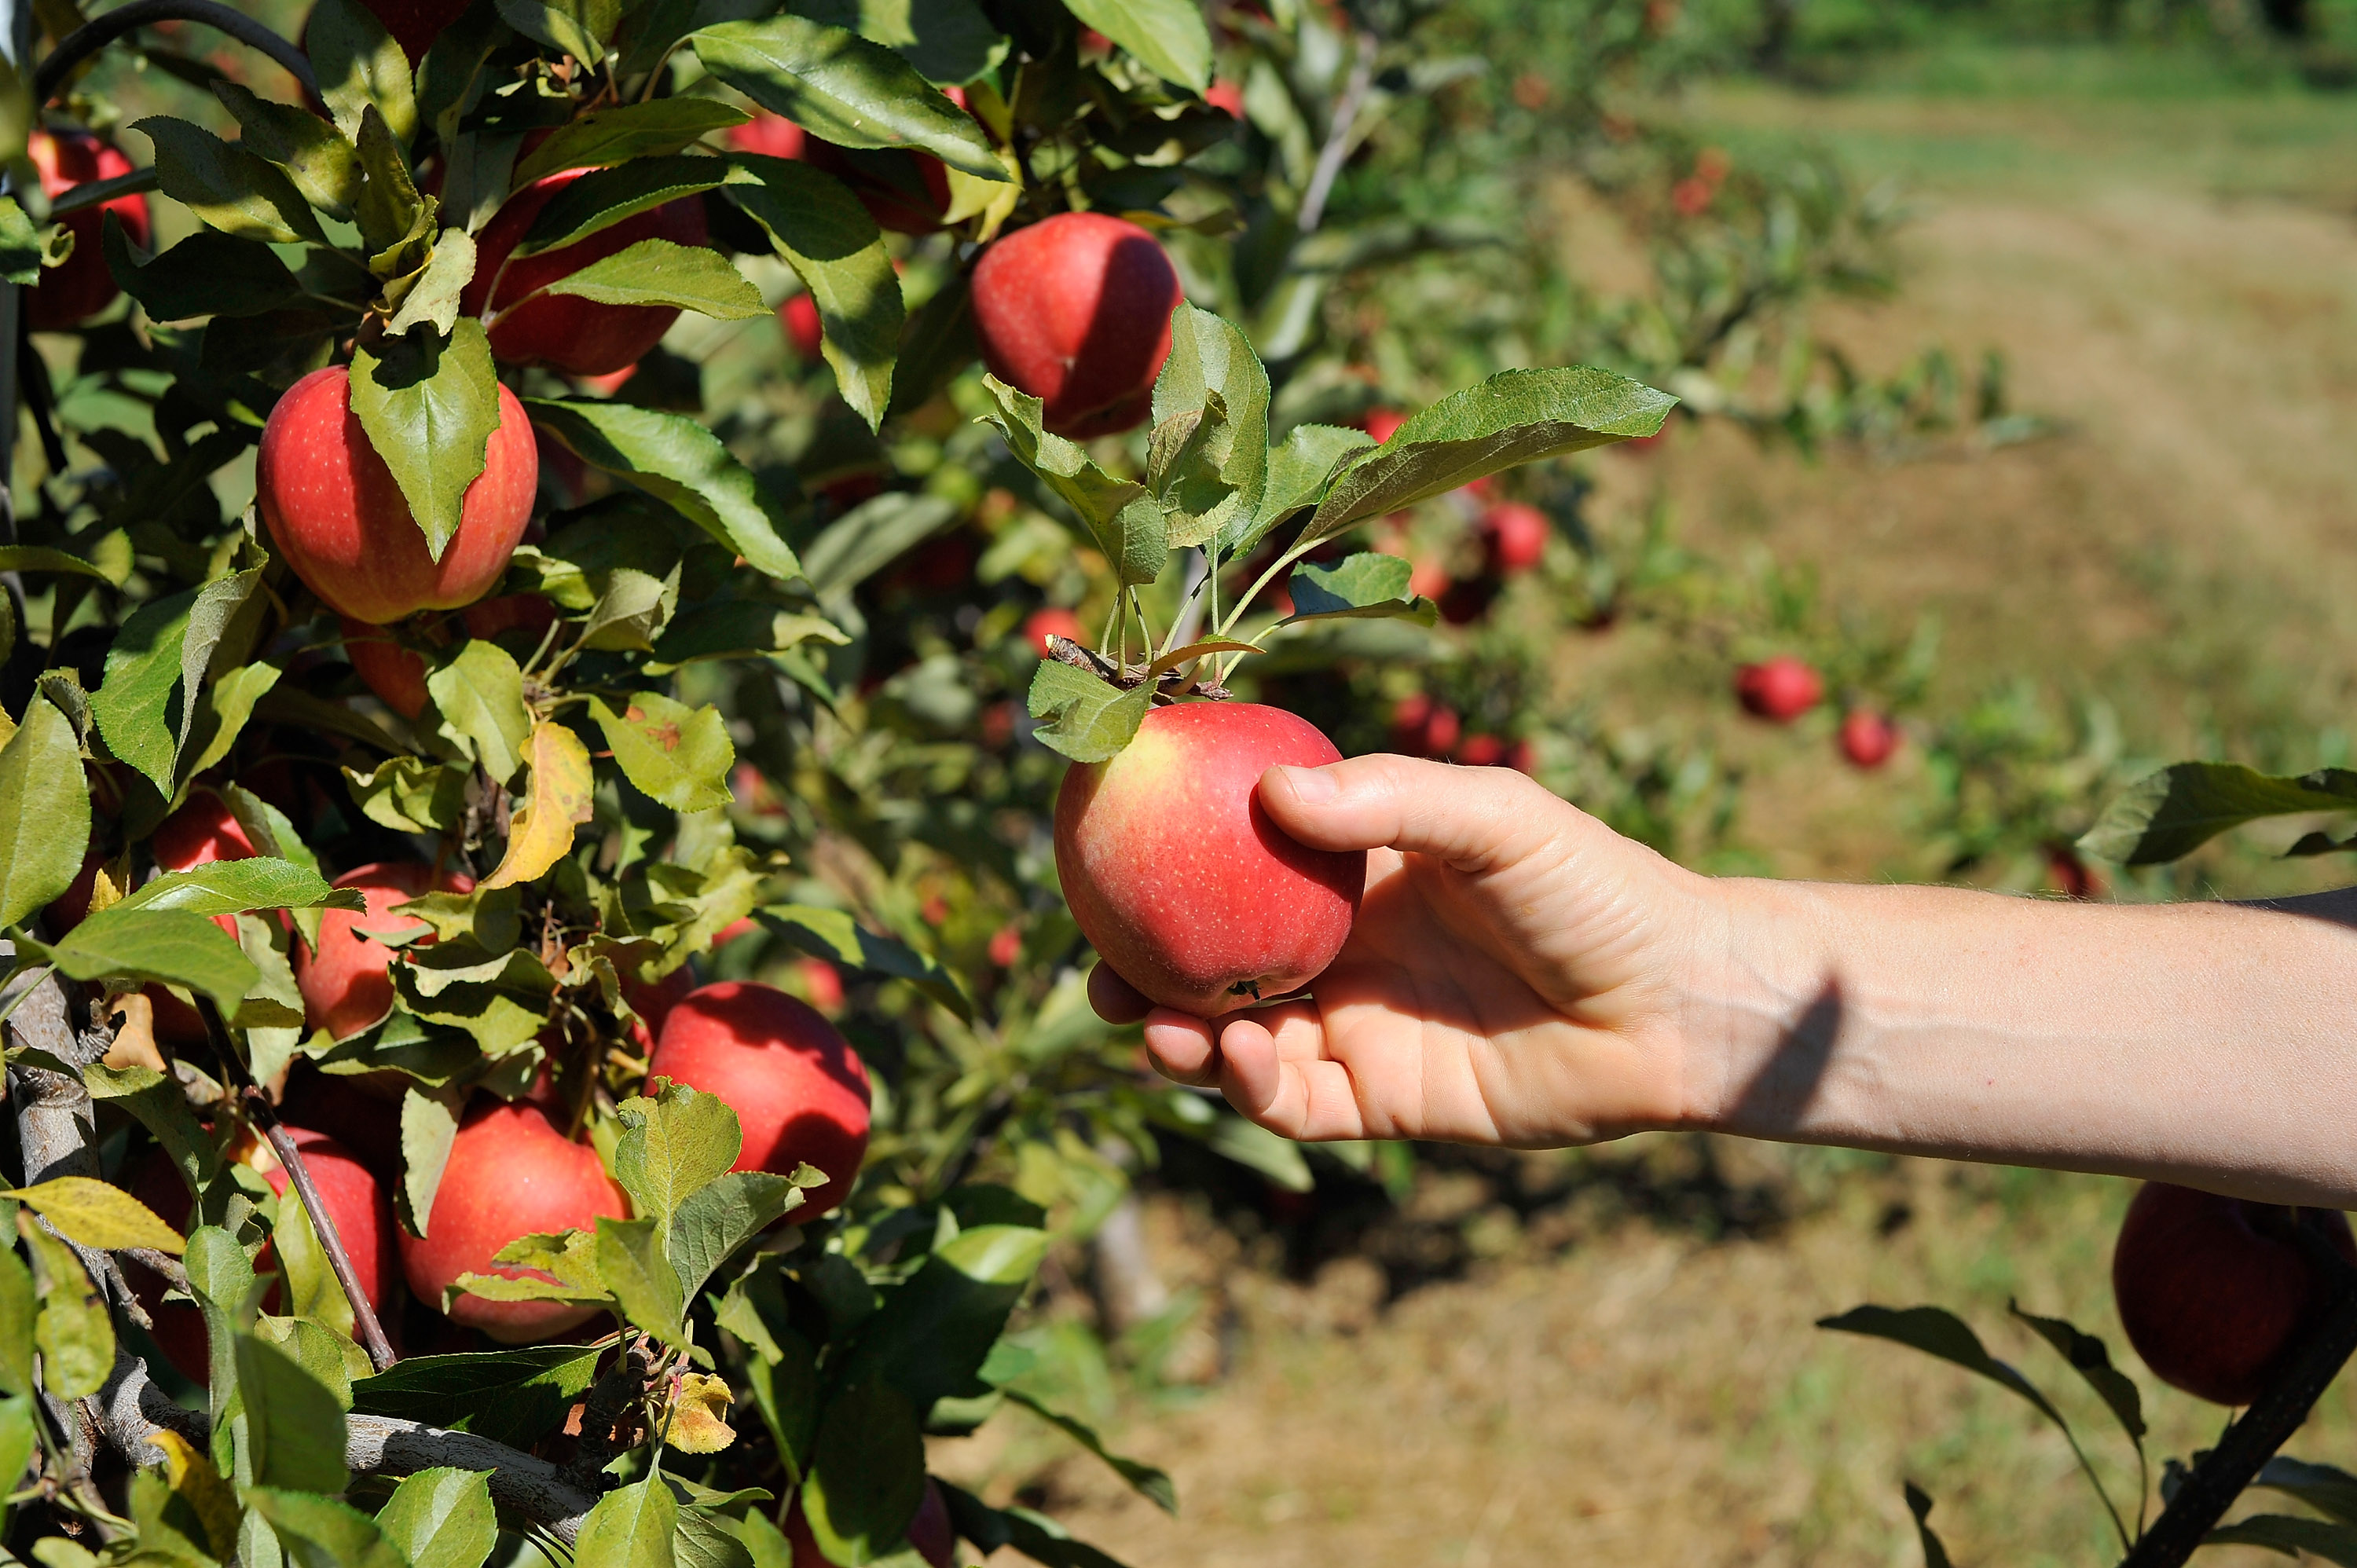 A hand picking an apple from a tree.